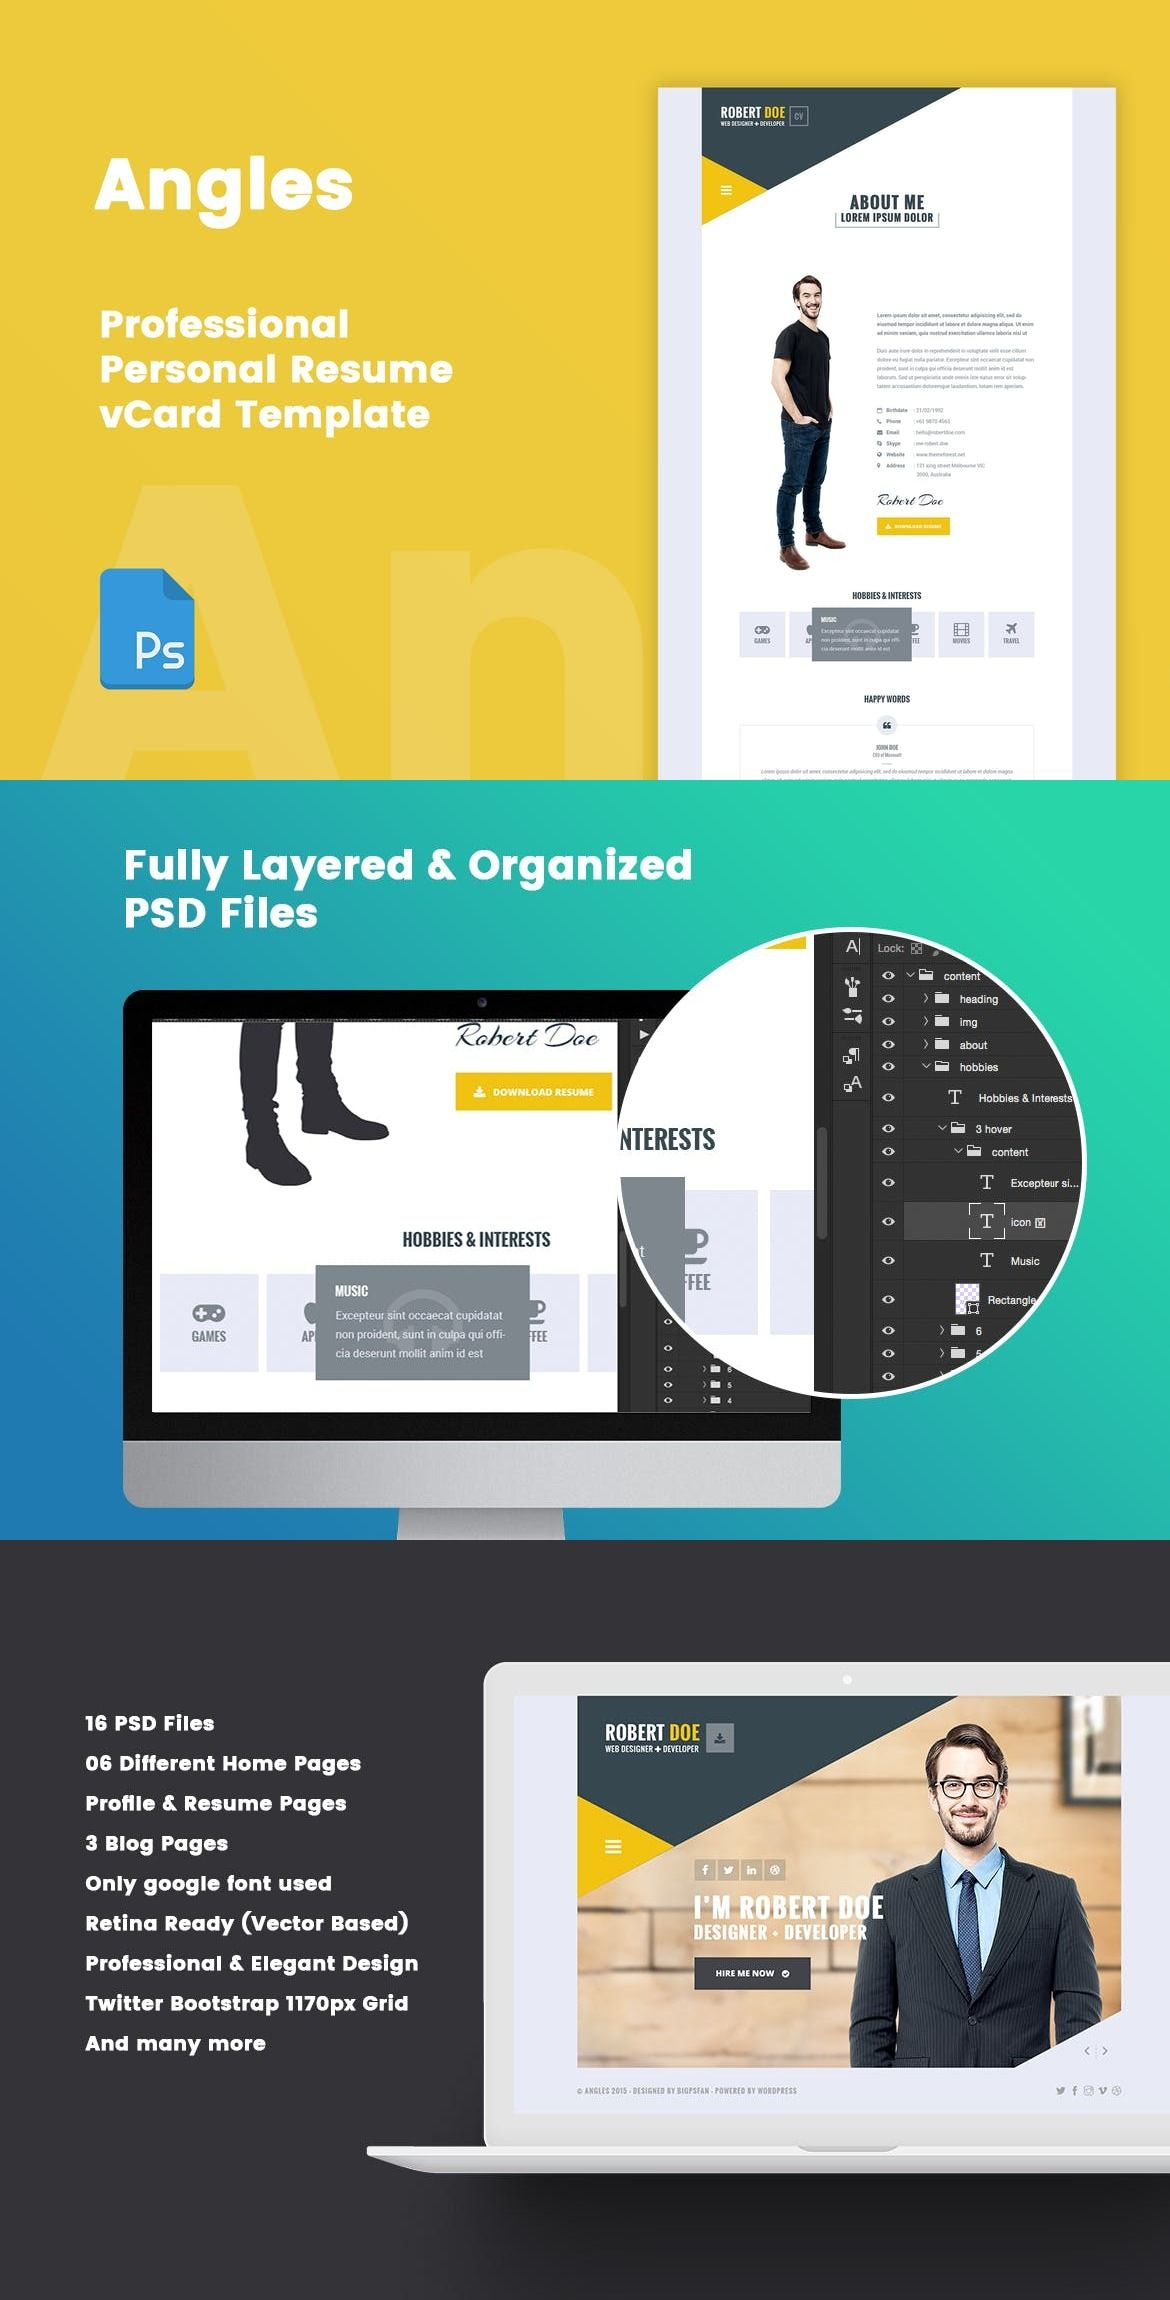 Angles Personal Resume & vCard PSD Template — Adobe